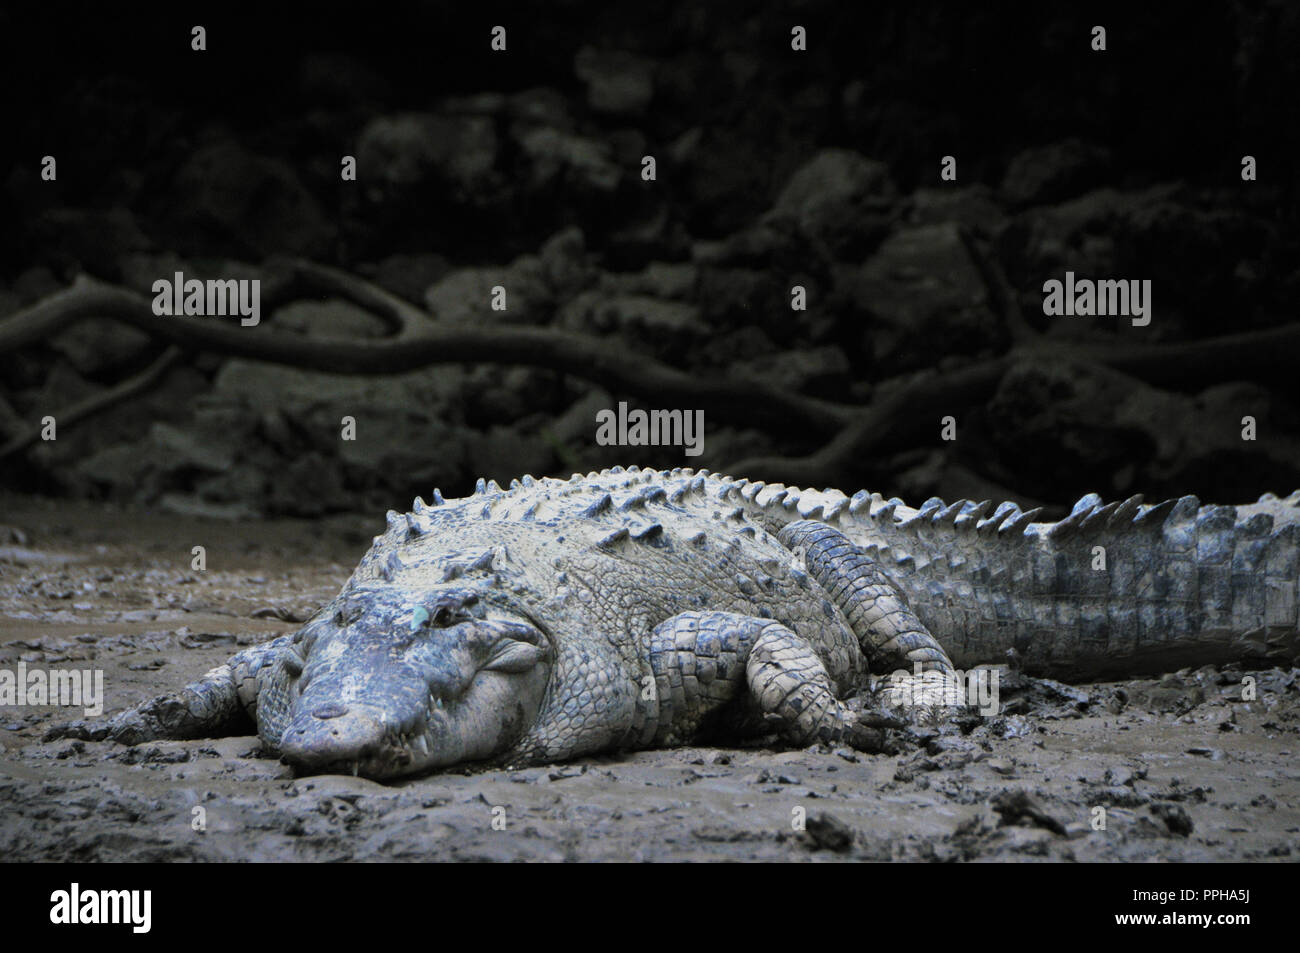 Wild Crocodiles in the banks of the Canyon in Chiapas, Mexico. Sumidero Canyon (Spanish: Cañón del Sumidero) is a deep natural canyon . - Stock Image